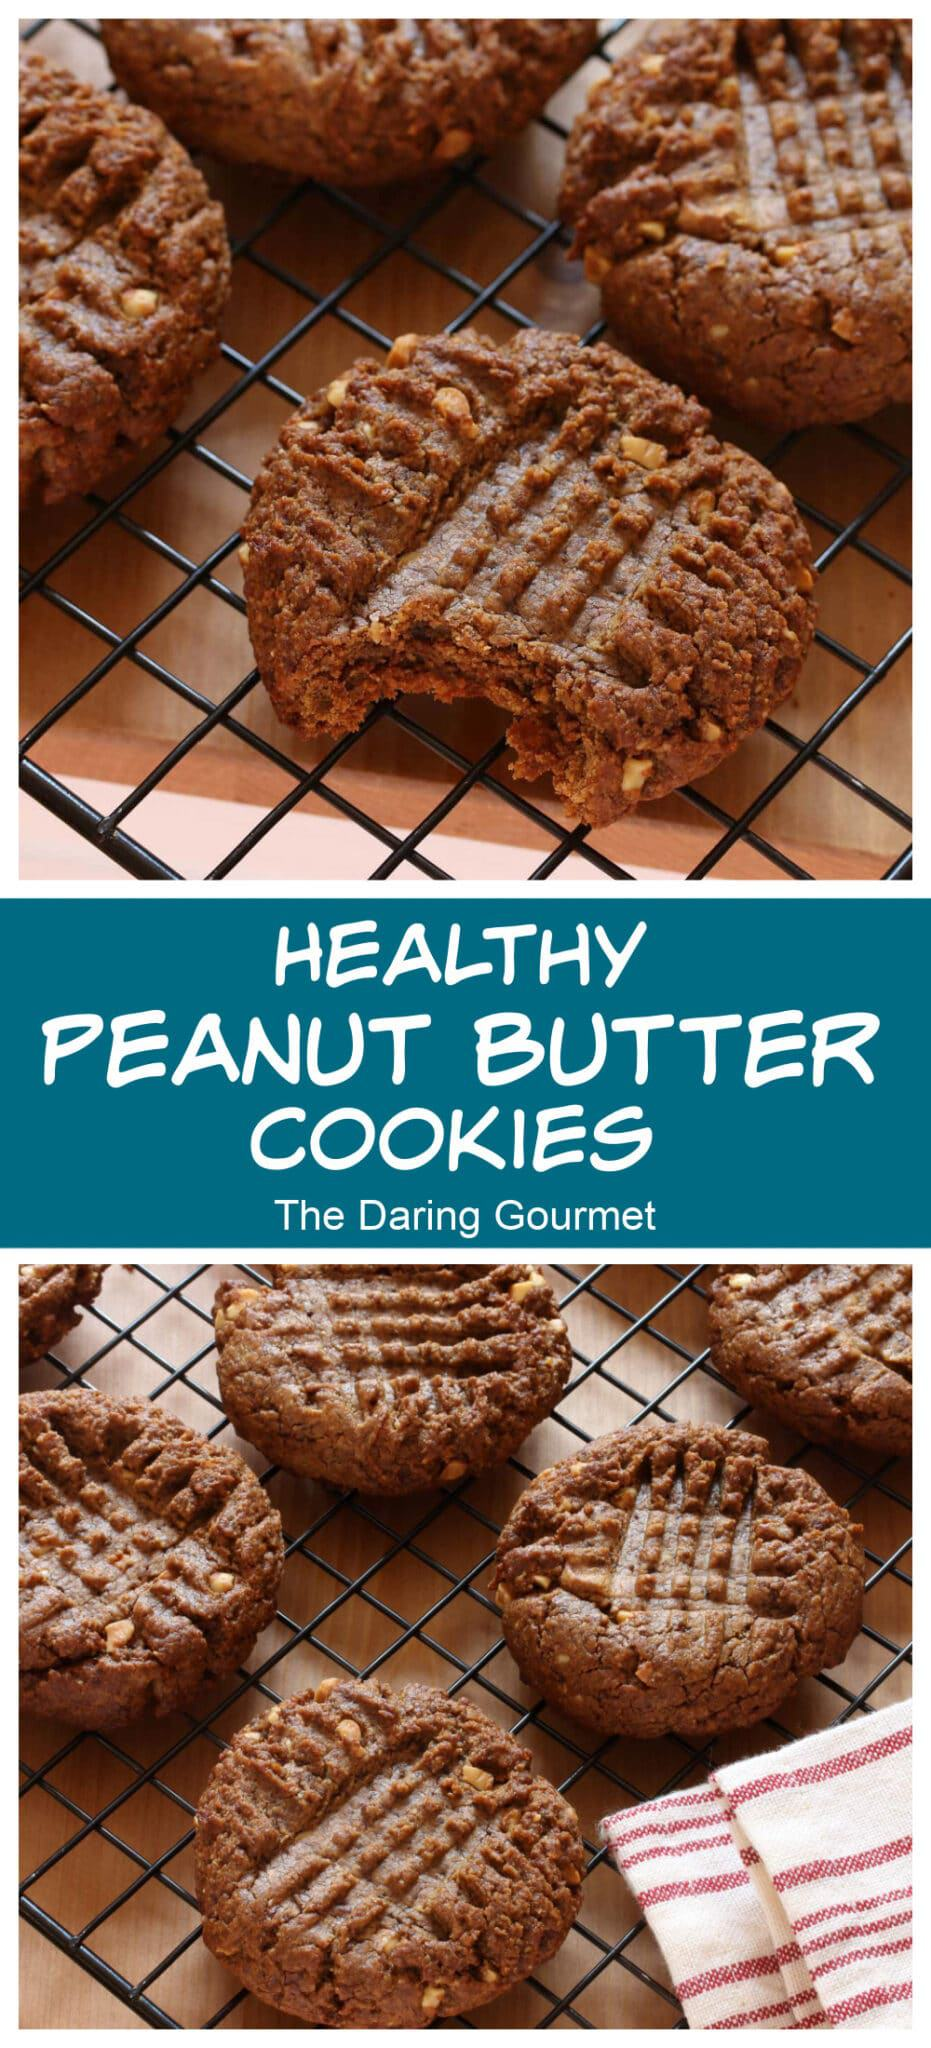 healthy peanut butter cookies recipe 3 ingredients coconut sugar oil